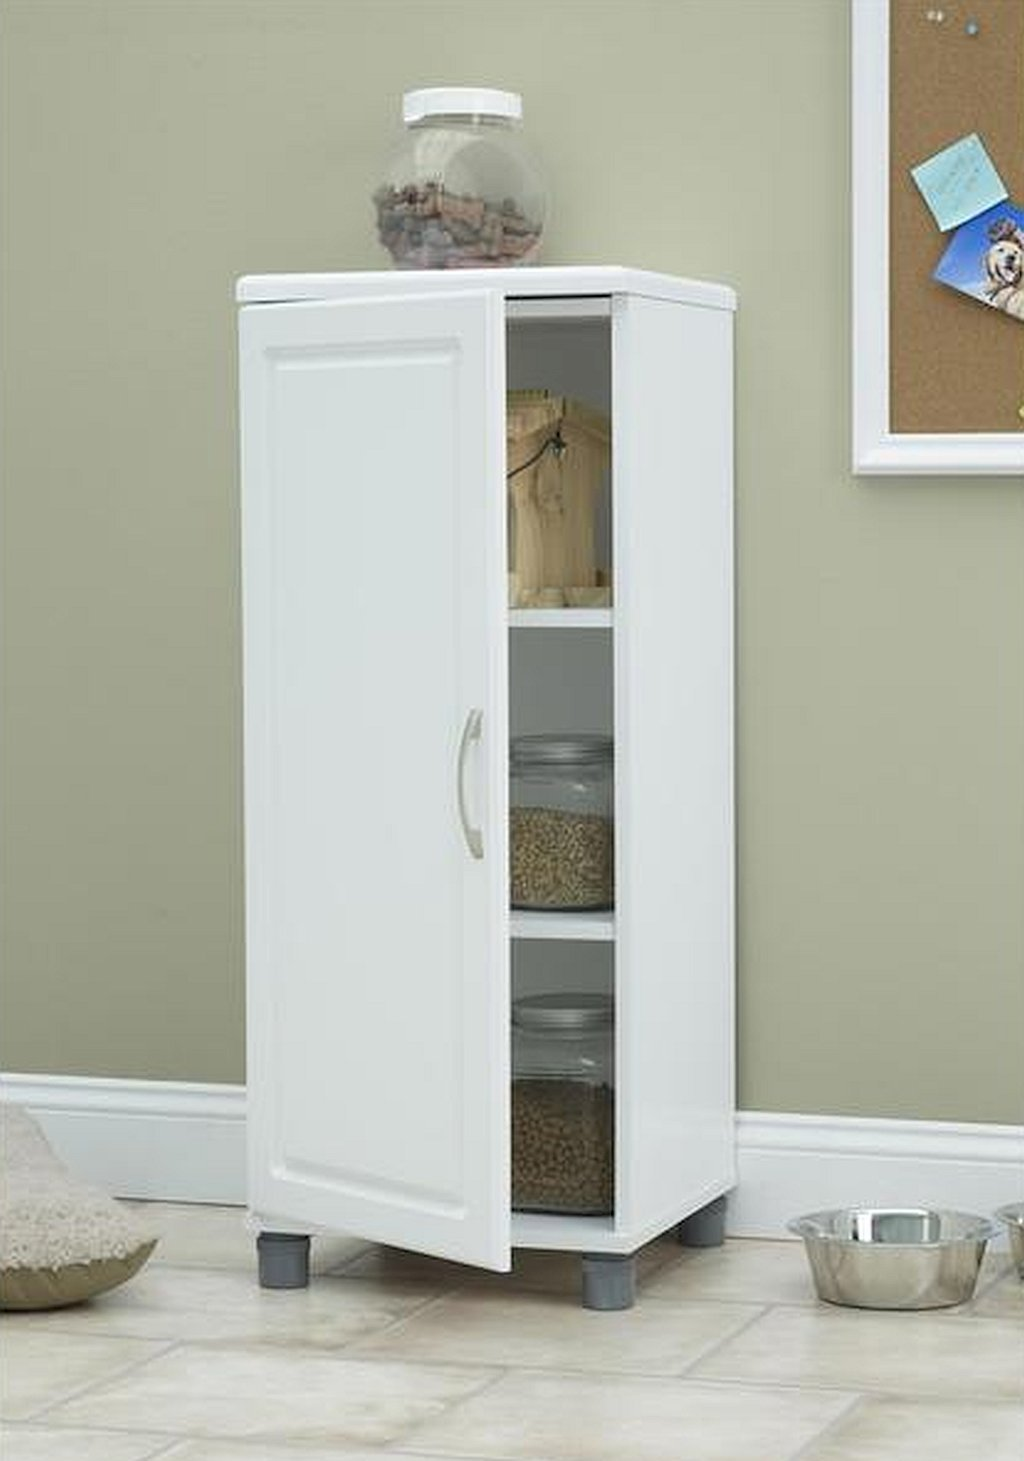 16-inch White Kendall Stackable Storage Cabinet, Storage Cabinets (overall) 38.25Hx15.69Wx15.38D/ 43 lb